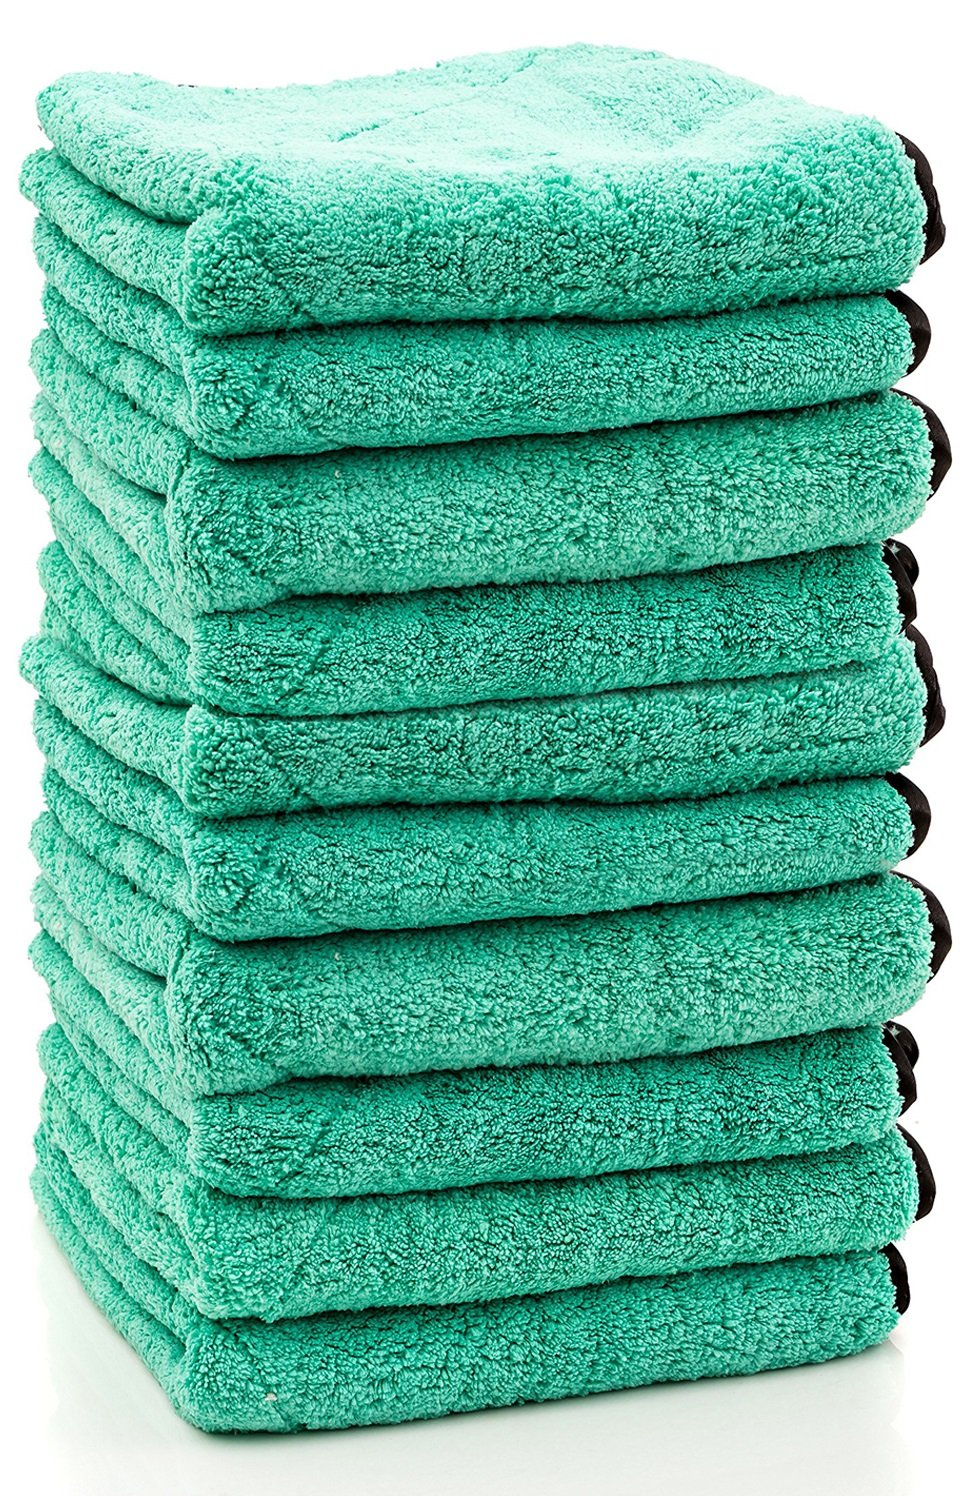 Dry Rite Premium Plush 14' x 14' Heavy Weight Microfiber Cloth- Ultra Thick- 700 GSM- Polishing, Detailing, Cleaning Towel for Fine Automobile Finishes, Car Windows, Glass, Use Wet/Dry- (10) Dry-Rite STM-10